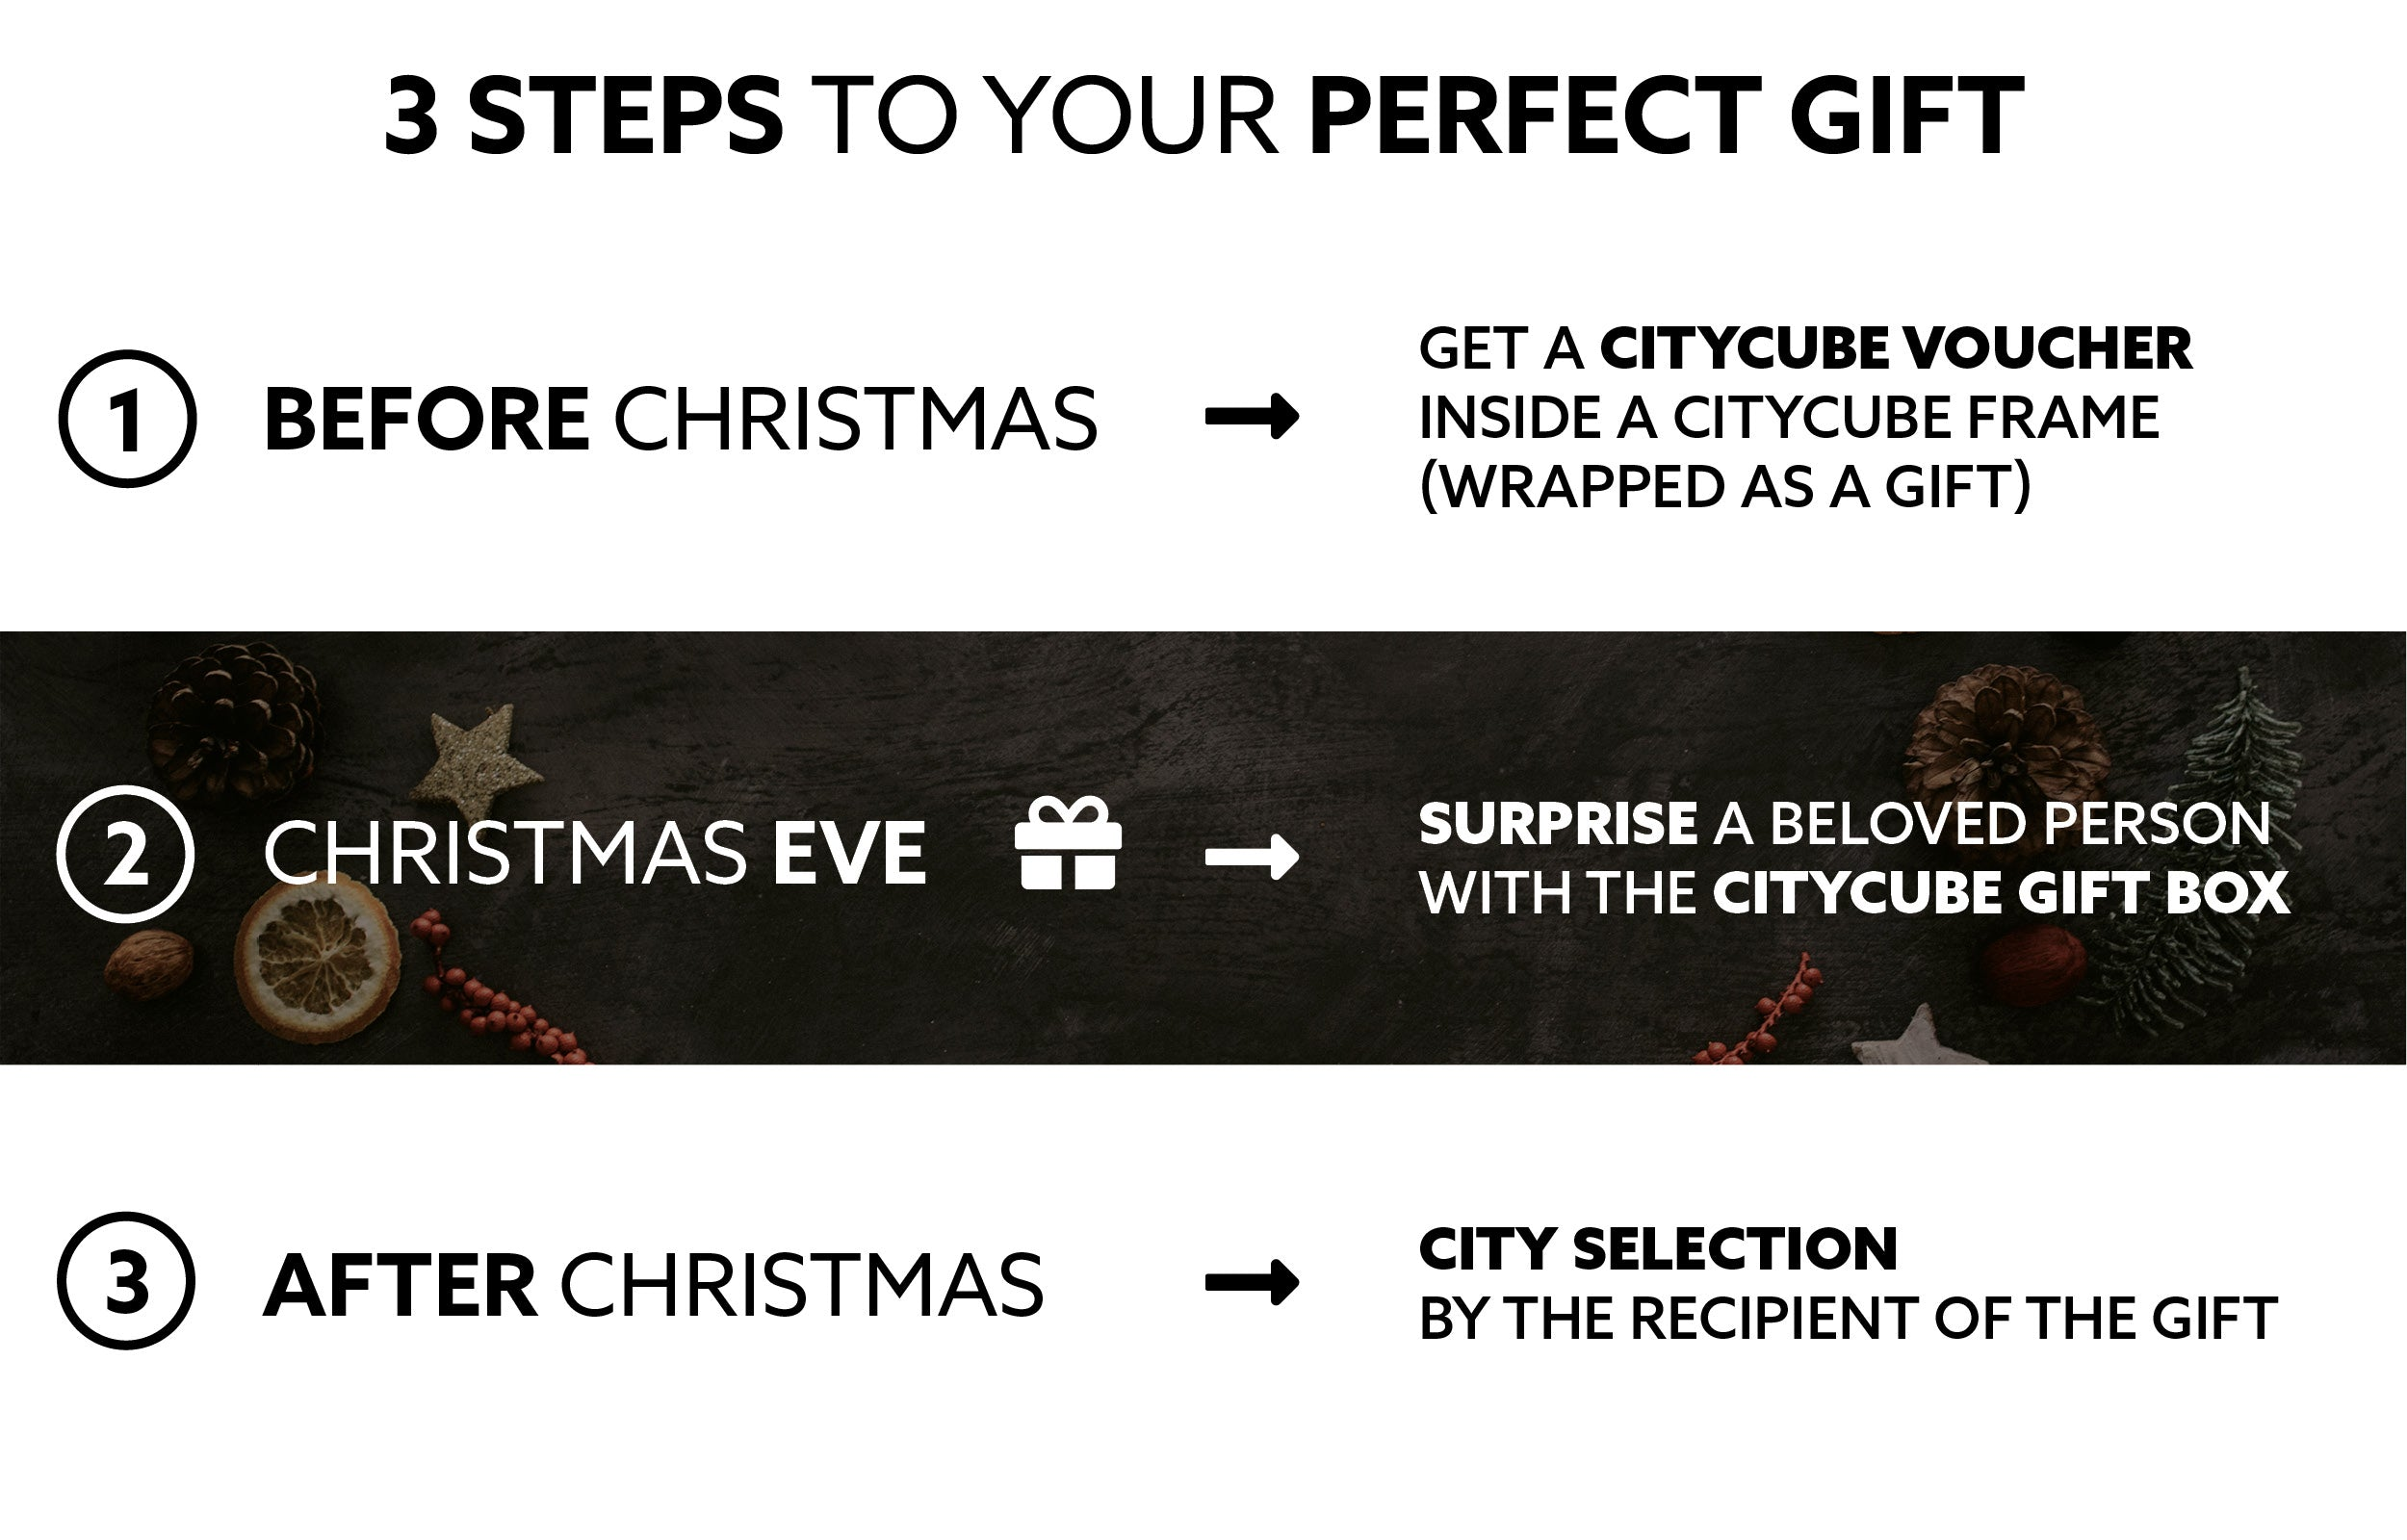 CITYCUBE Gift whats included